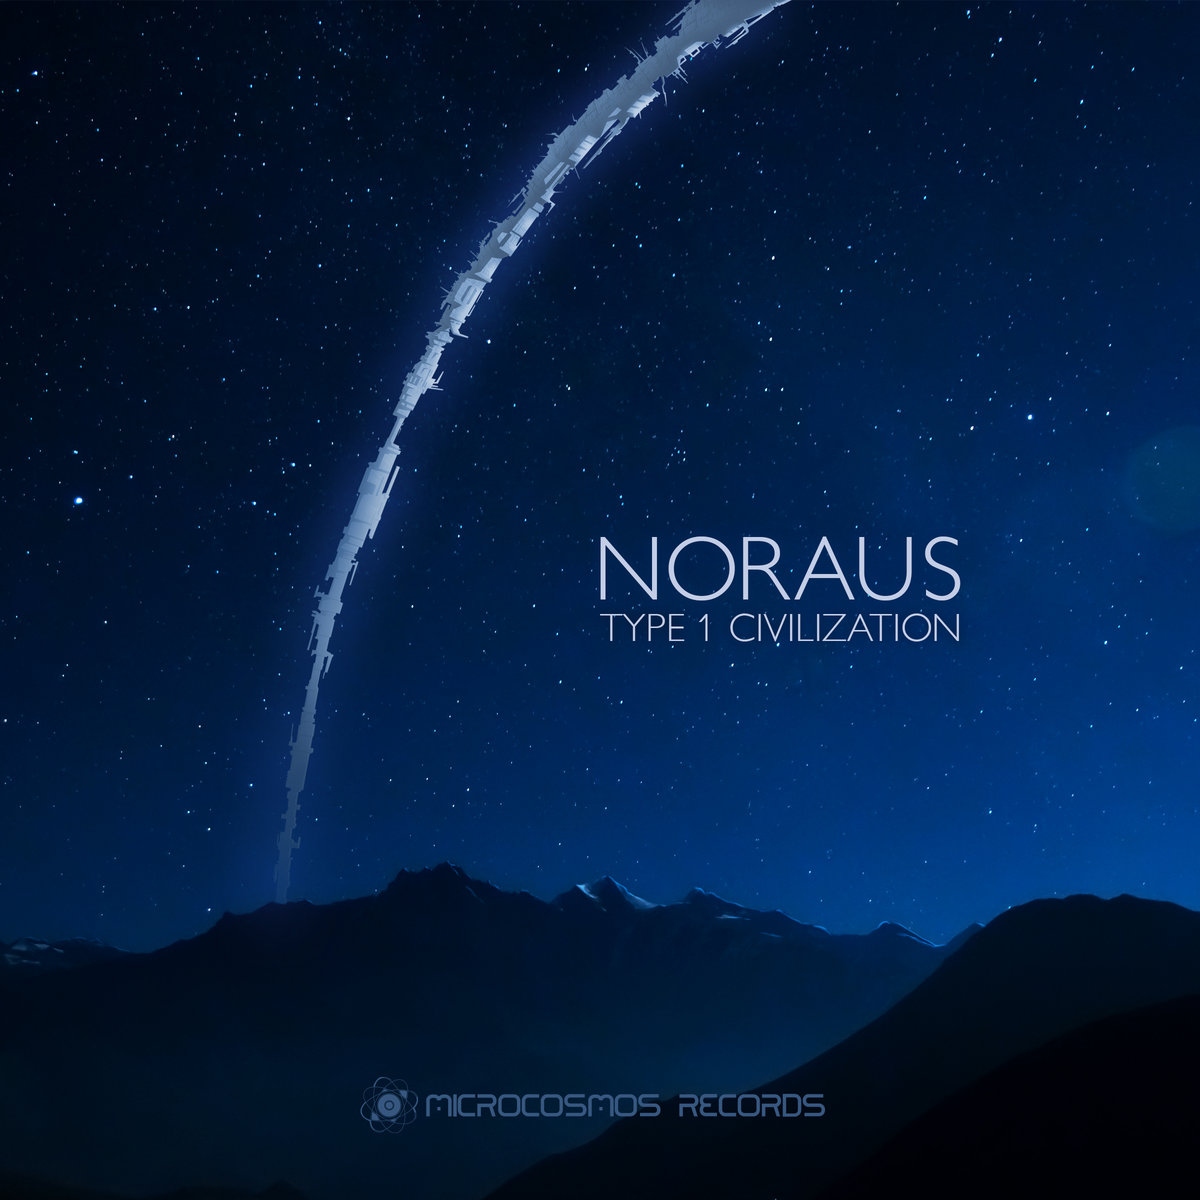 Noraus - Glow Effect @ 'Type 1 Civilization' album (ambient, chill-out)